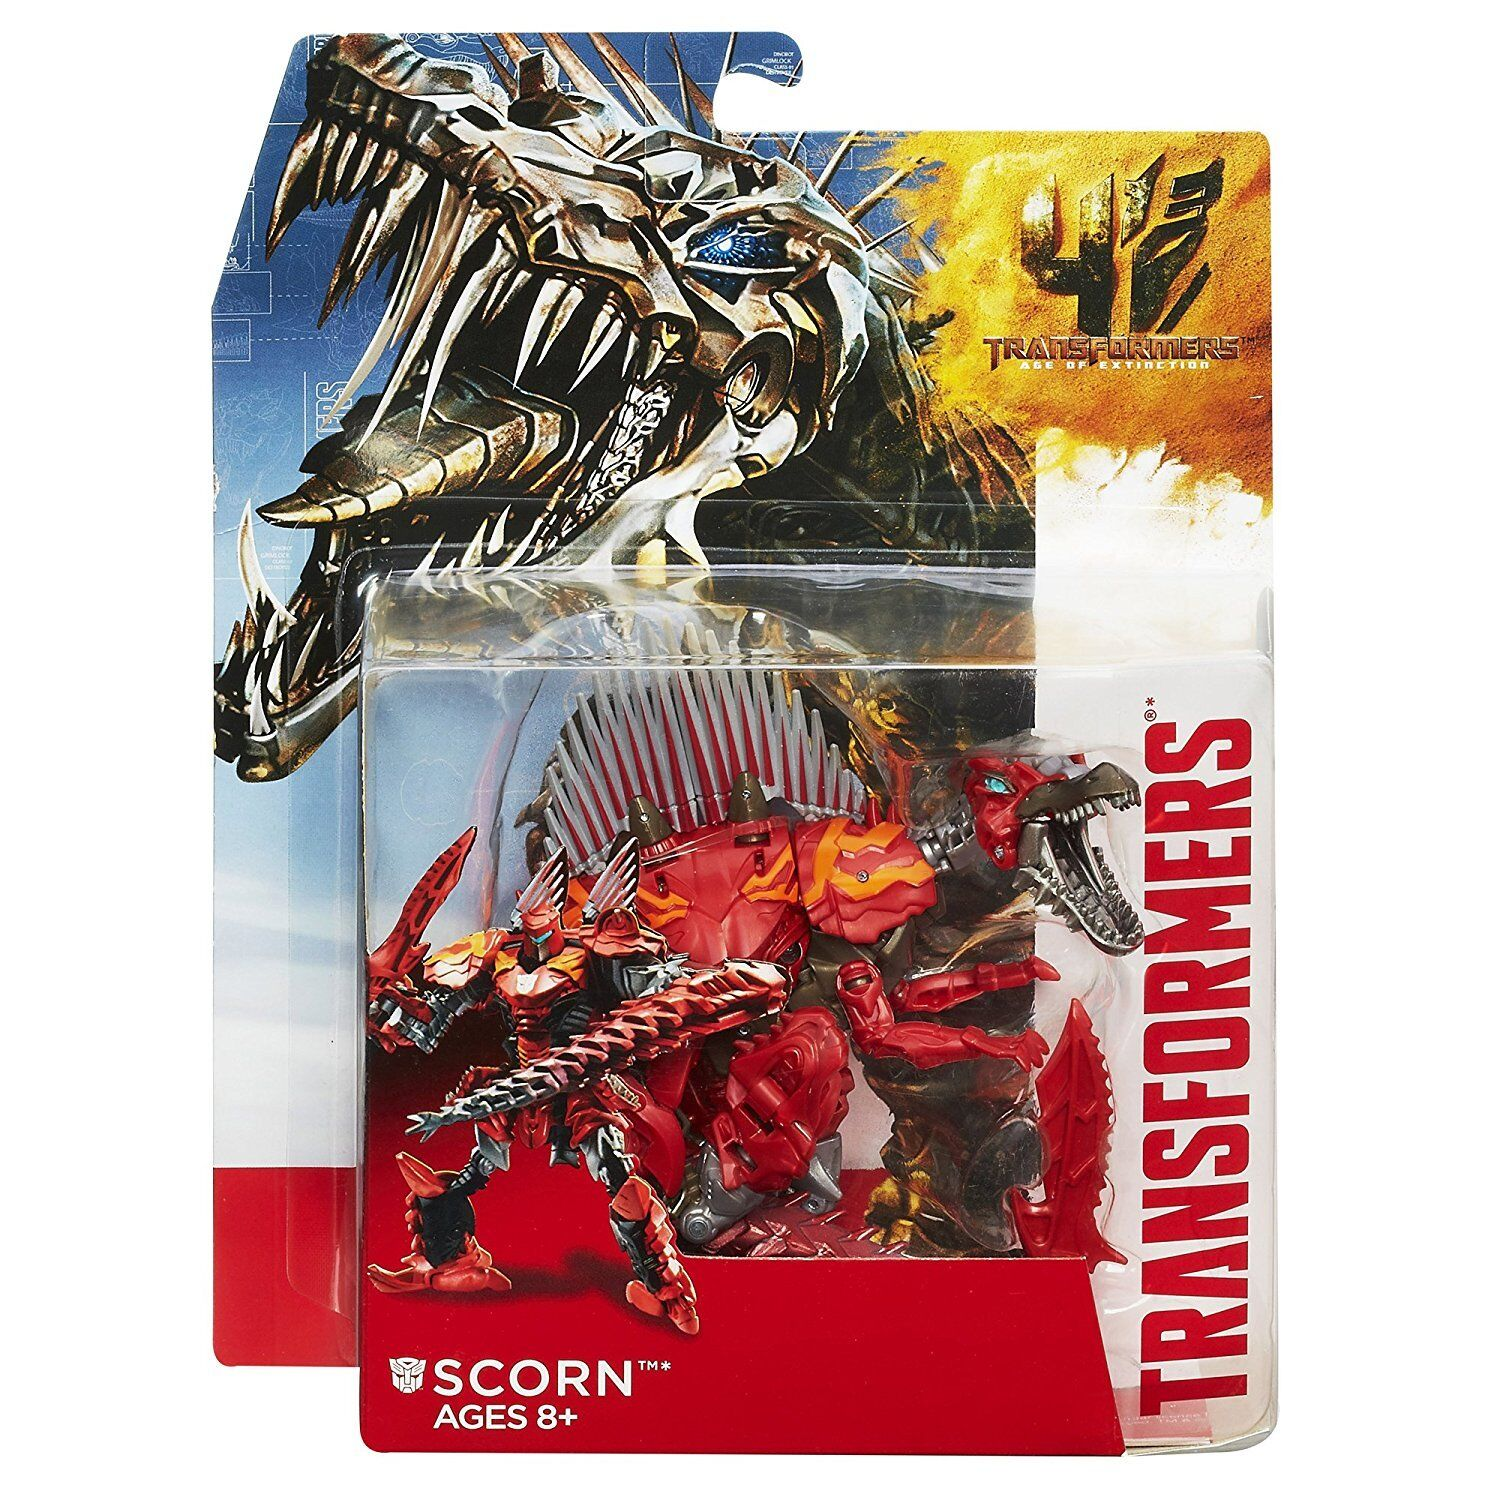 TRANSFORMERS 4 Age of Extinction Deluxe Scorn Authentic NOT KO BEST DEAL COURIER